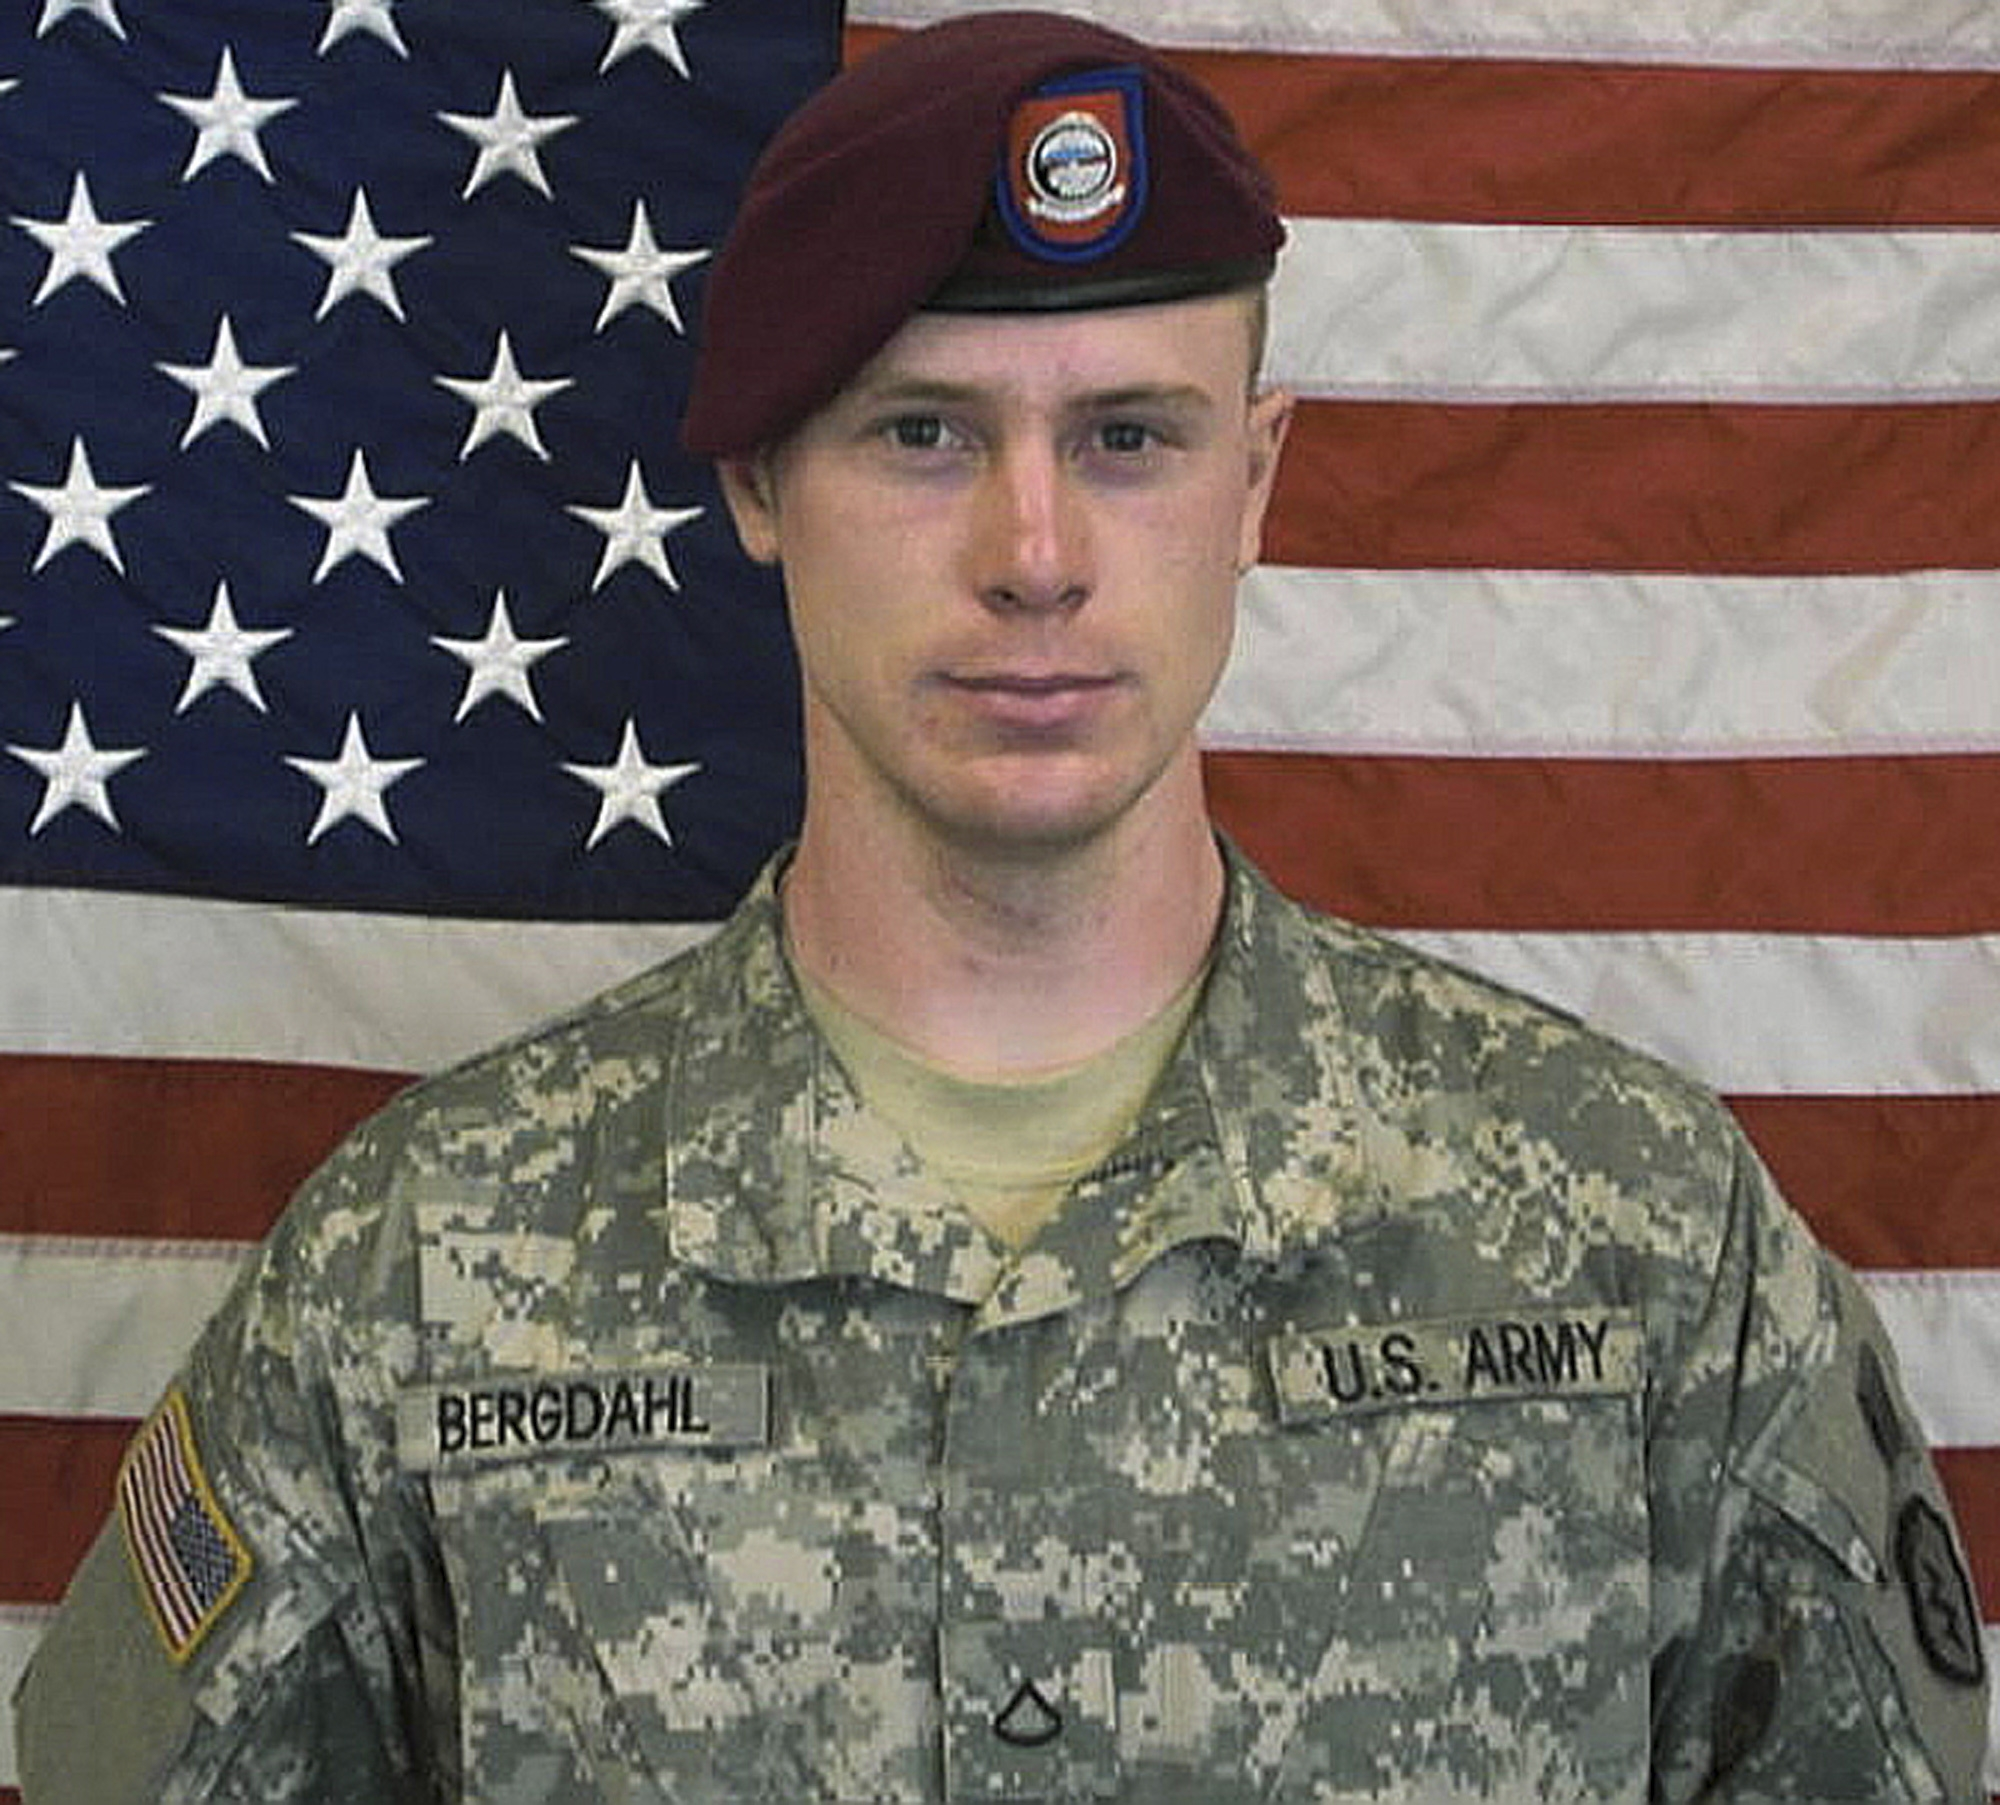 Sgt. Bowe Bergdahl, recently freed from Taliban capture, is shown in an official Army photo. President Obama's decision to swap five prisoners held at Guantanamo Bay for Berghdal should be the focus of a calm and responsible congressional investigation.